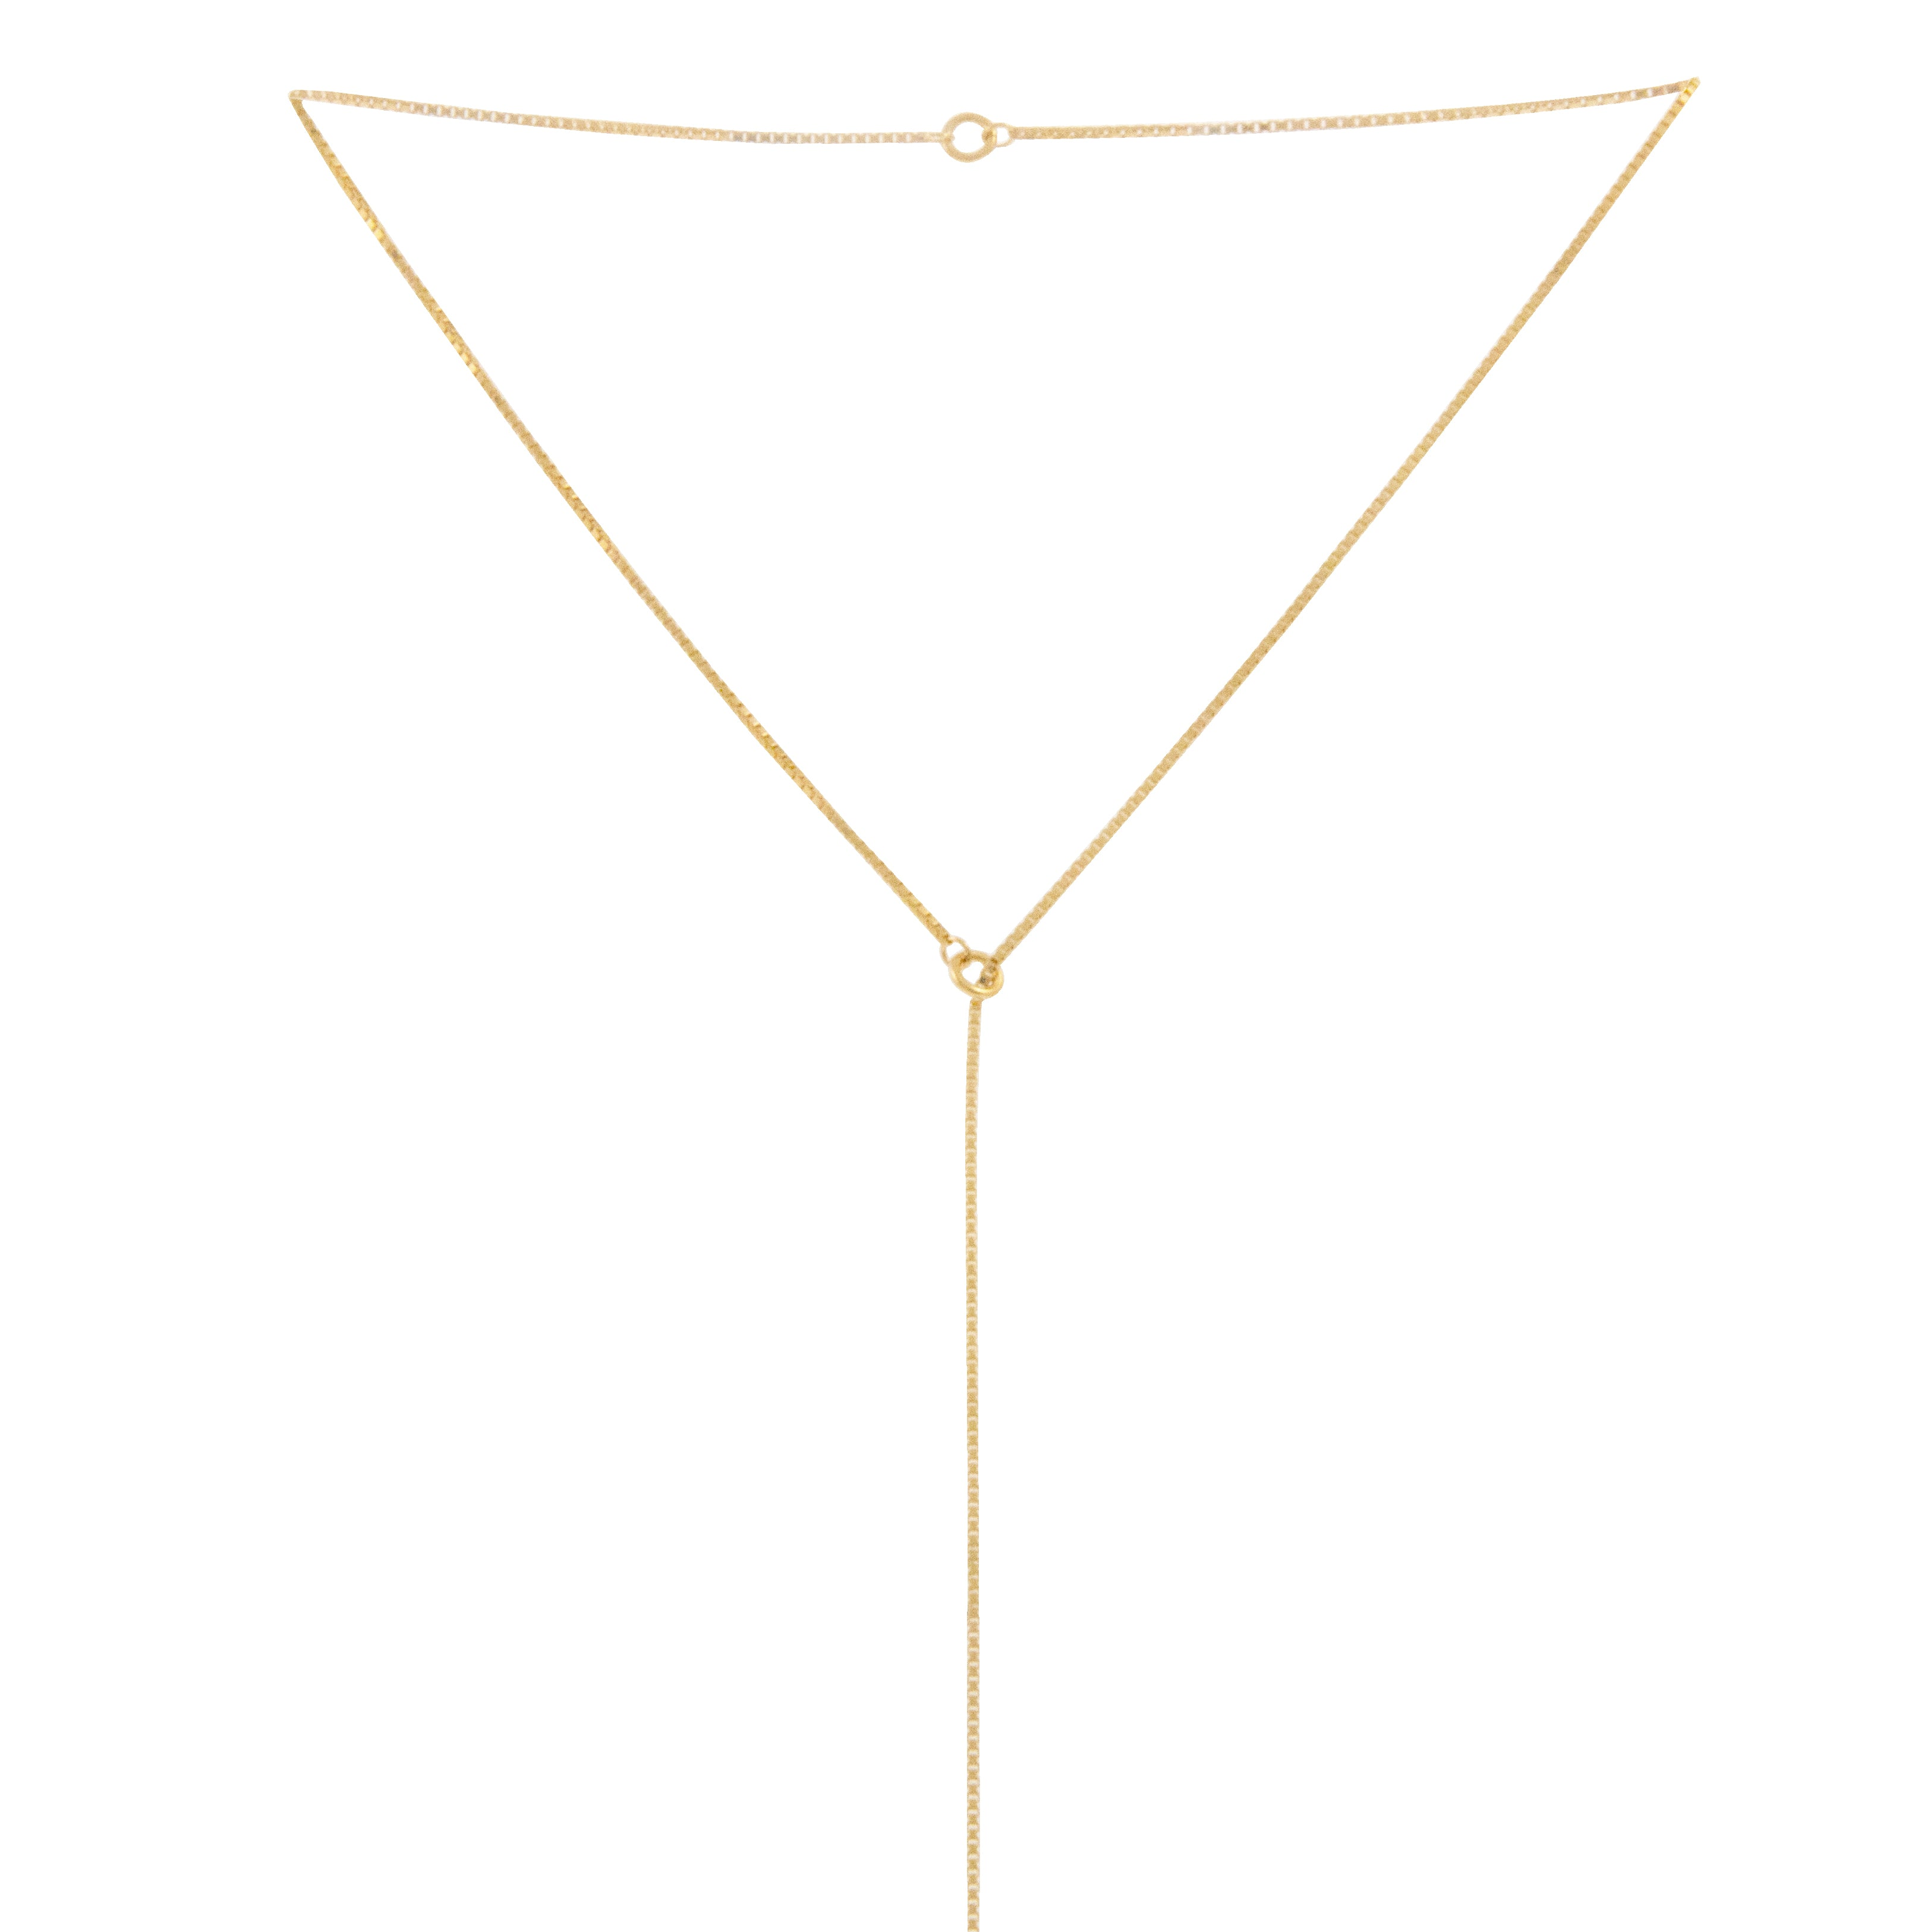 Planetaria Chain Pendant 20</br>18ct Yellow Gold on Sterling Silver